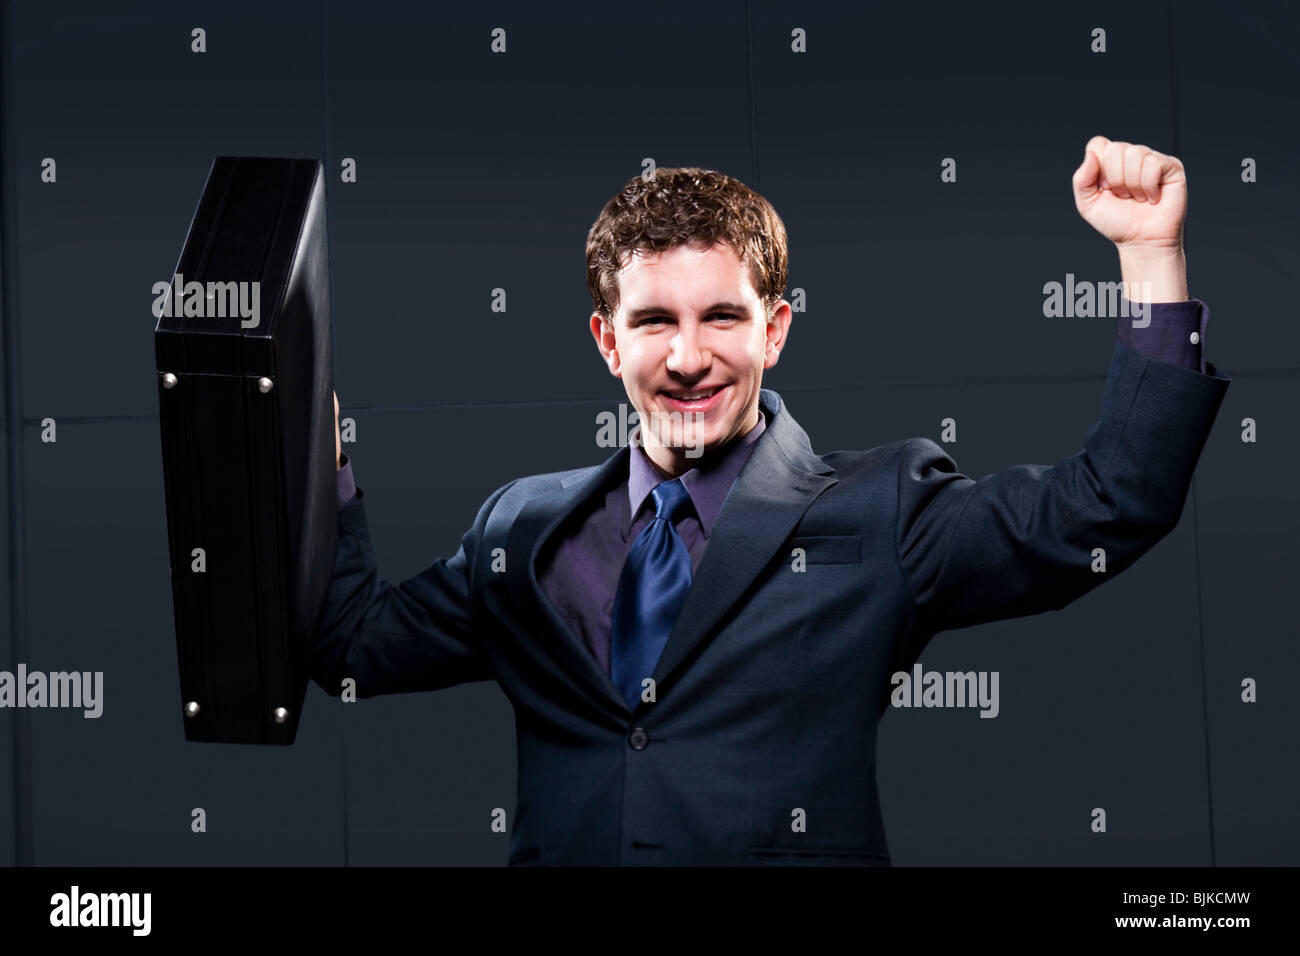 Business man with briefcase and arms up smiling - Stock Image